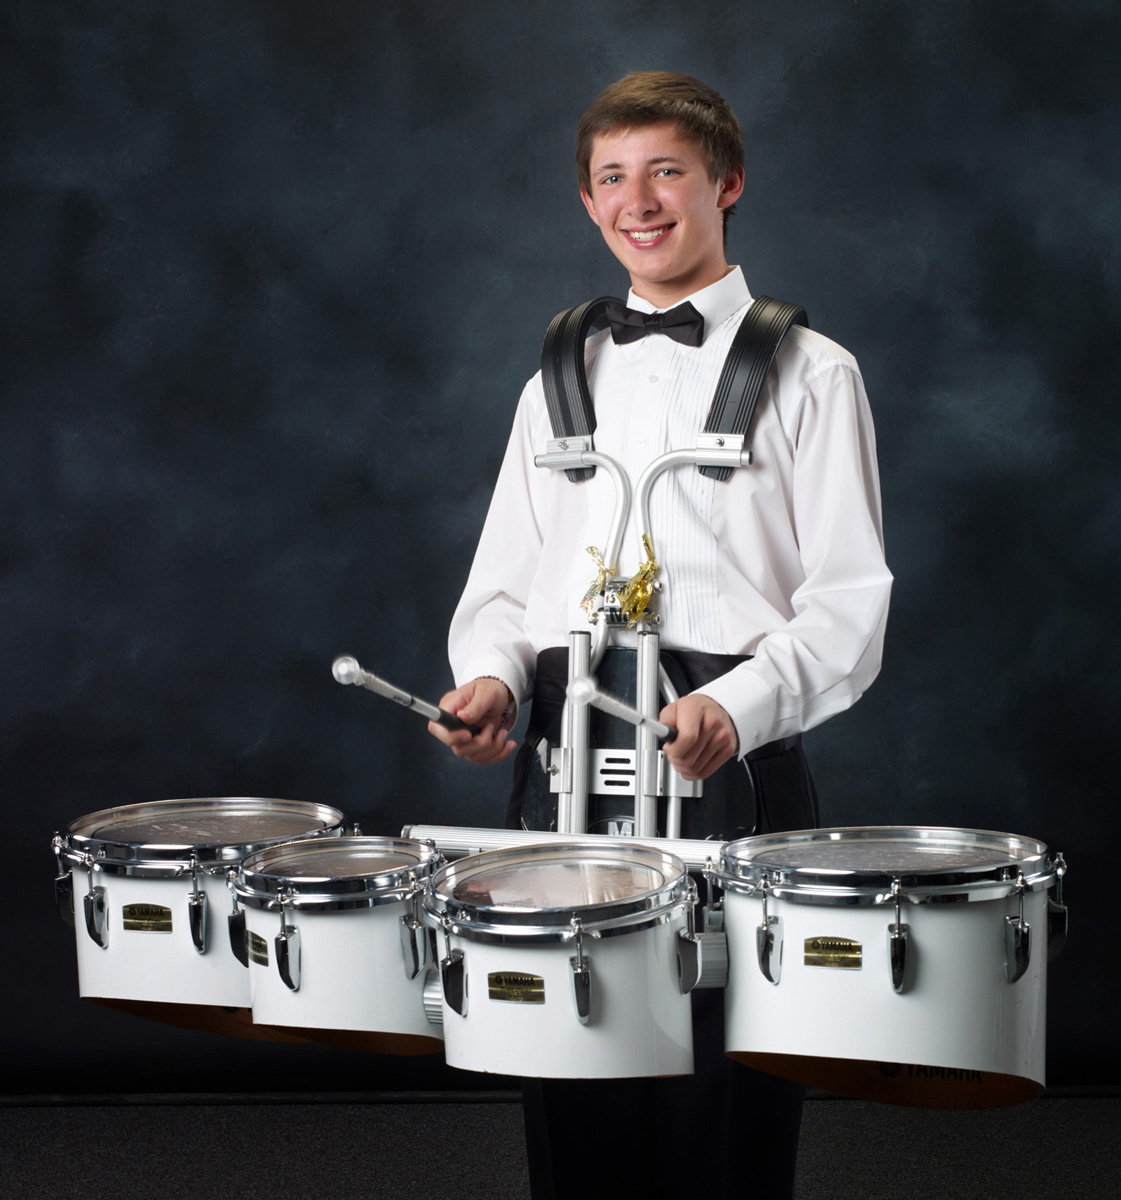 Senior Photo with Drums